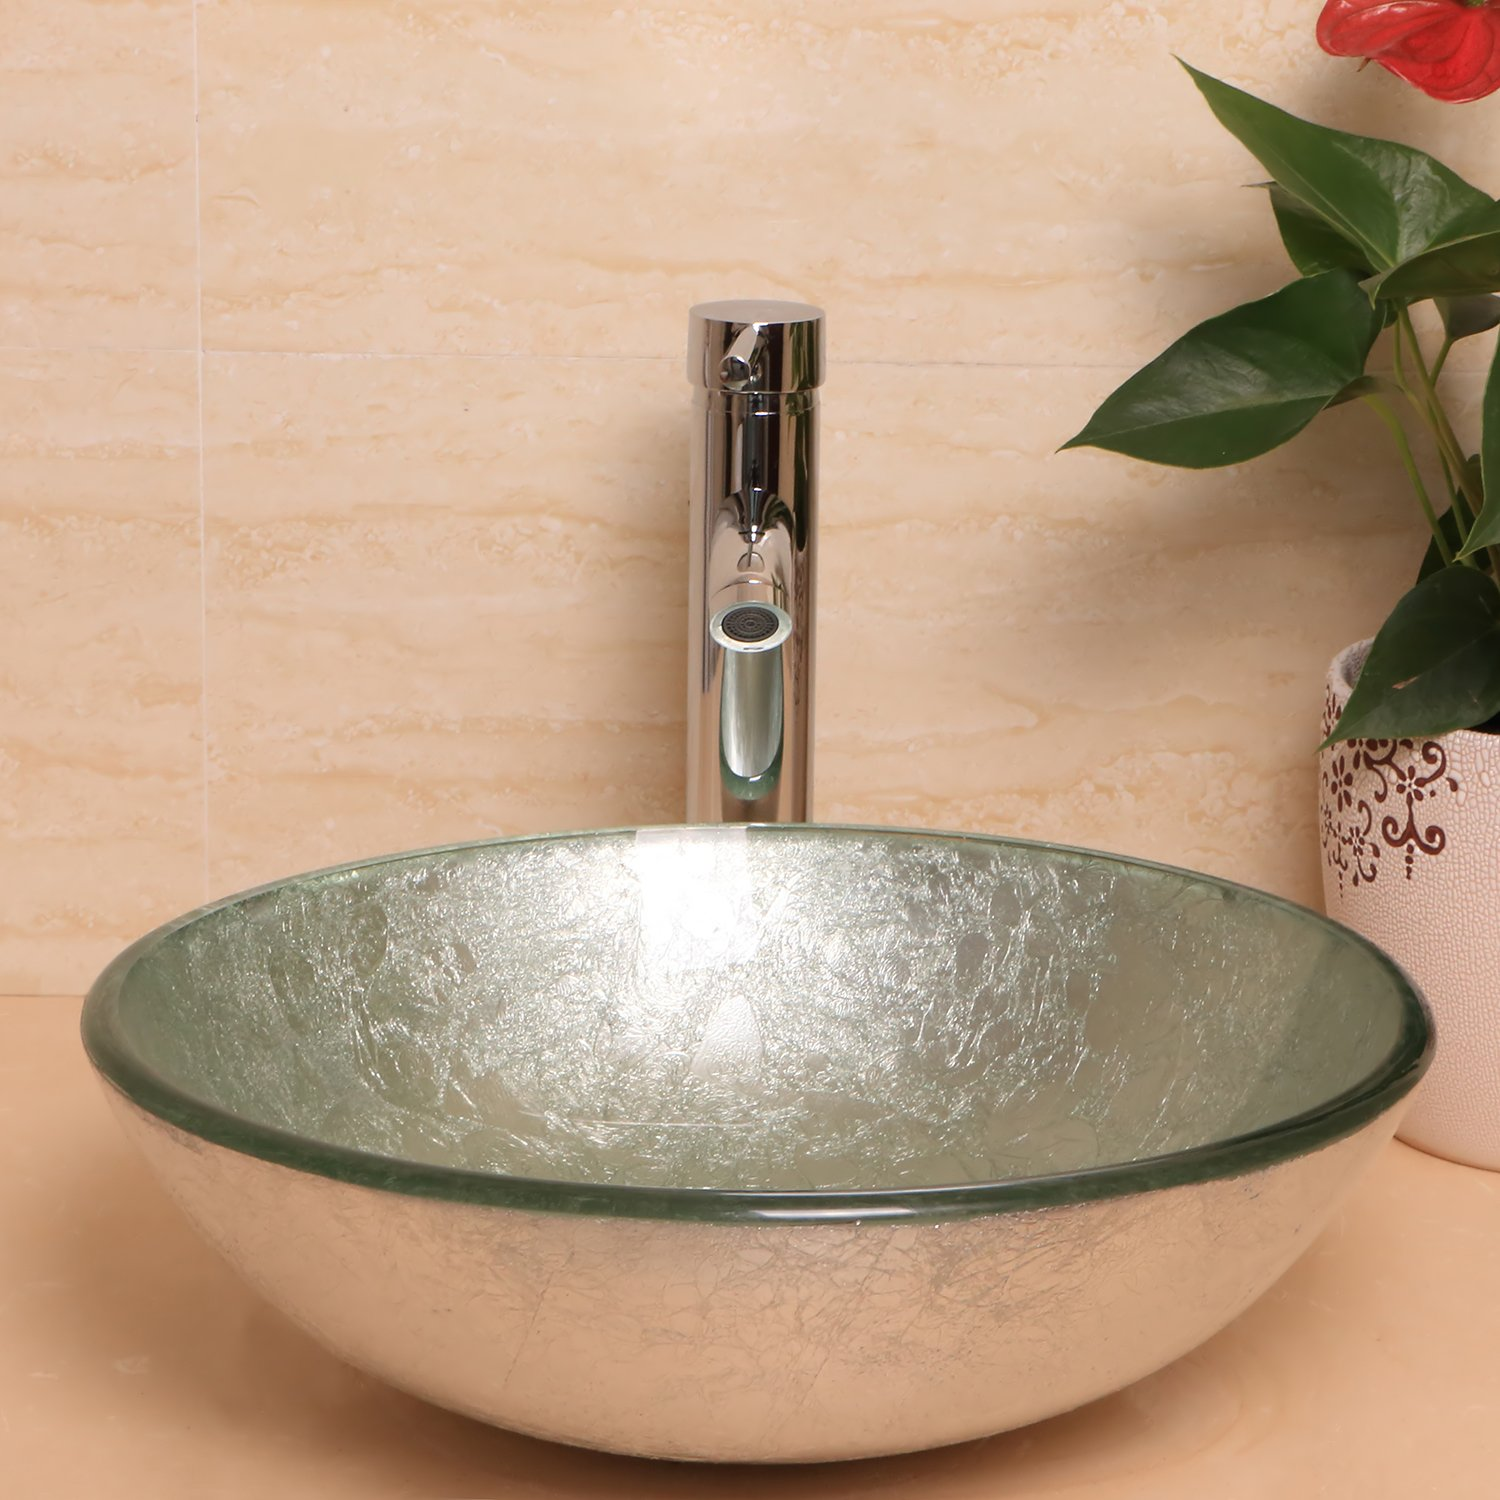 Sliverylake Silver Green Foil Bathroom Glass Vessel Sink Bowl With Chrome Faucet 80 Off Www A